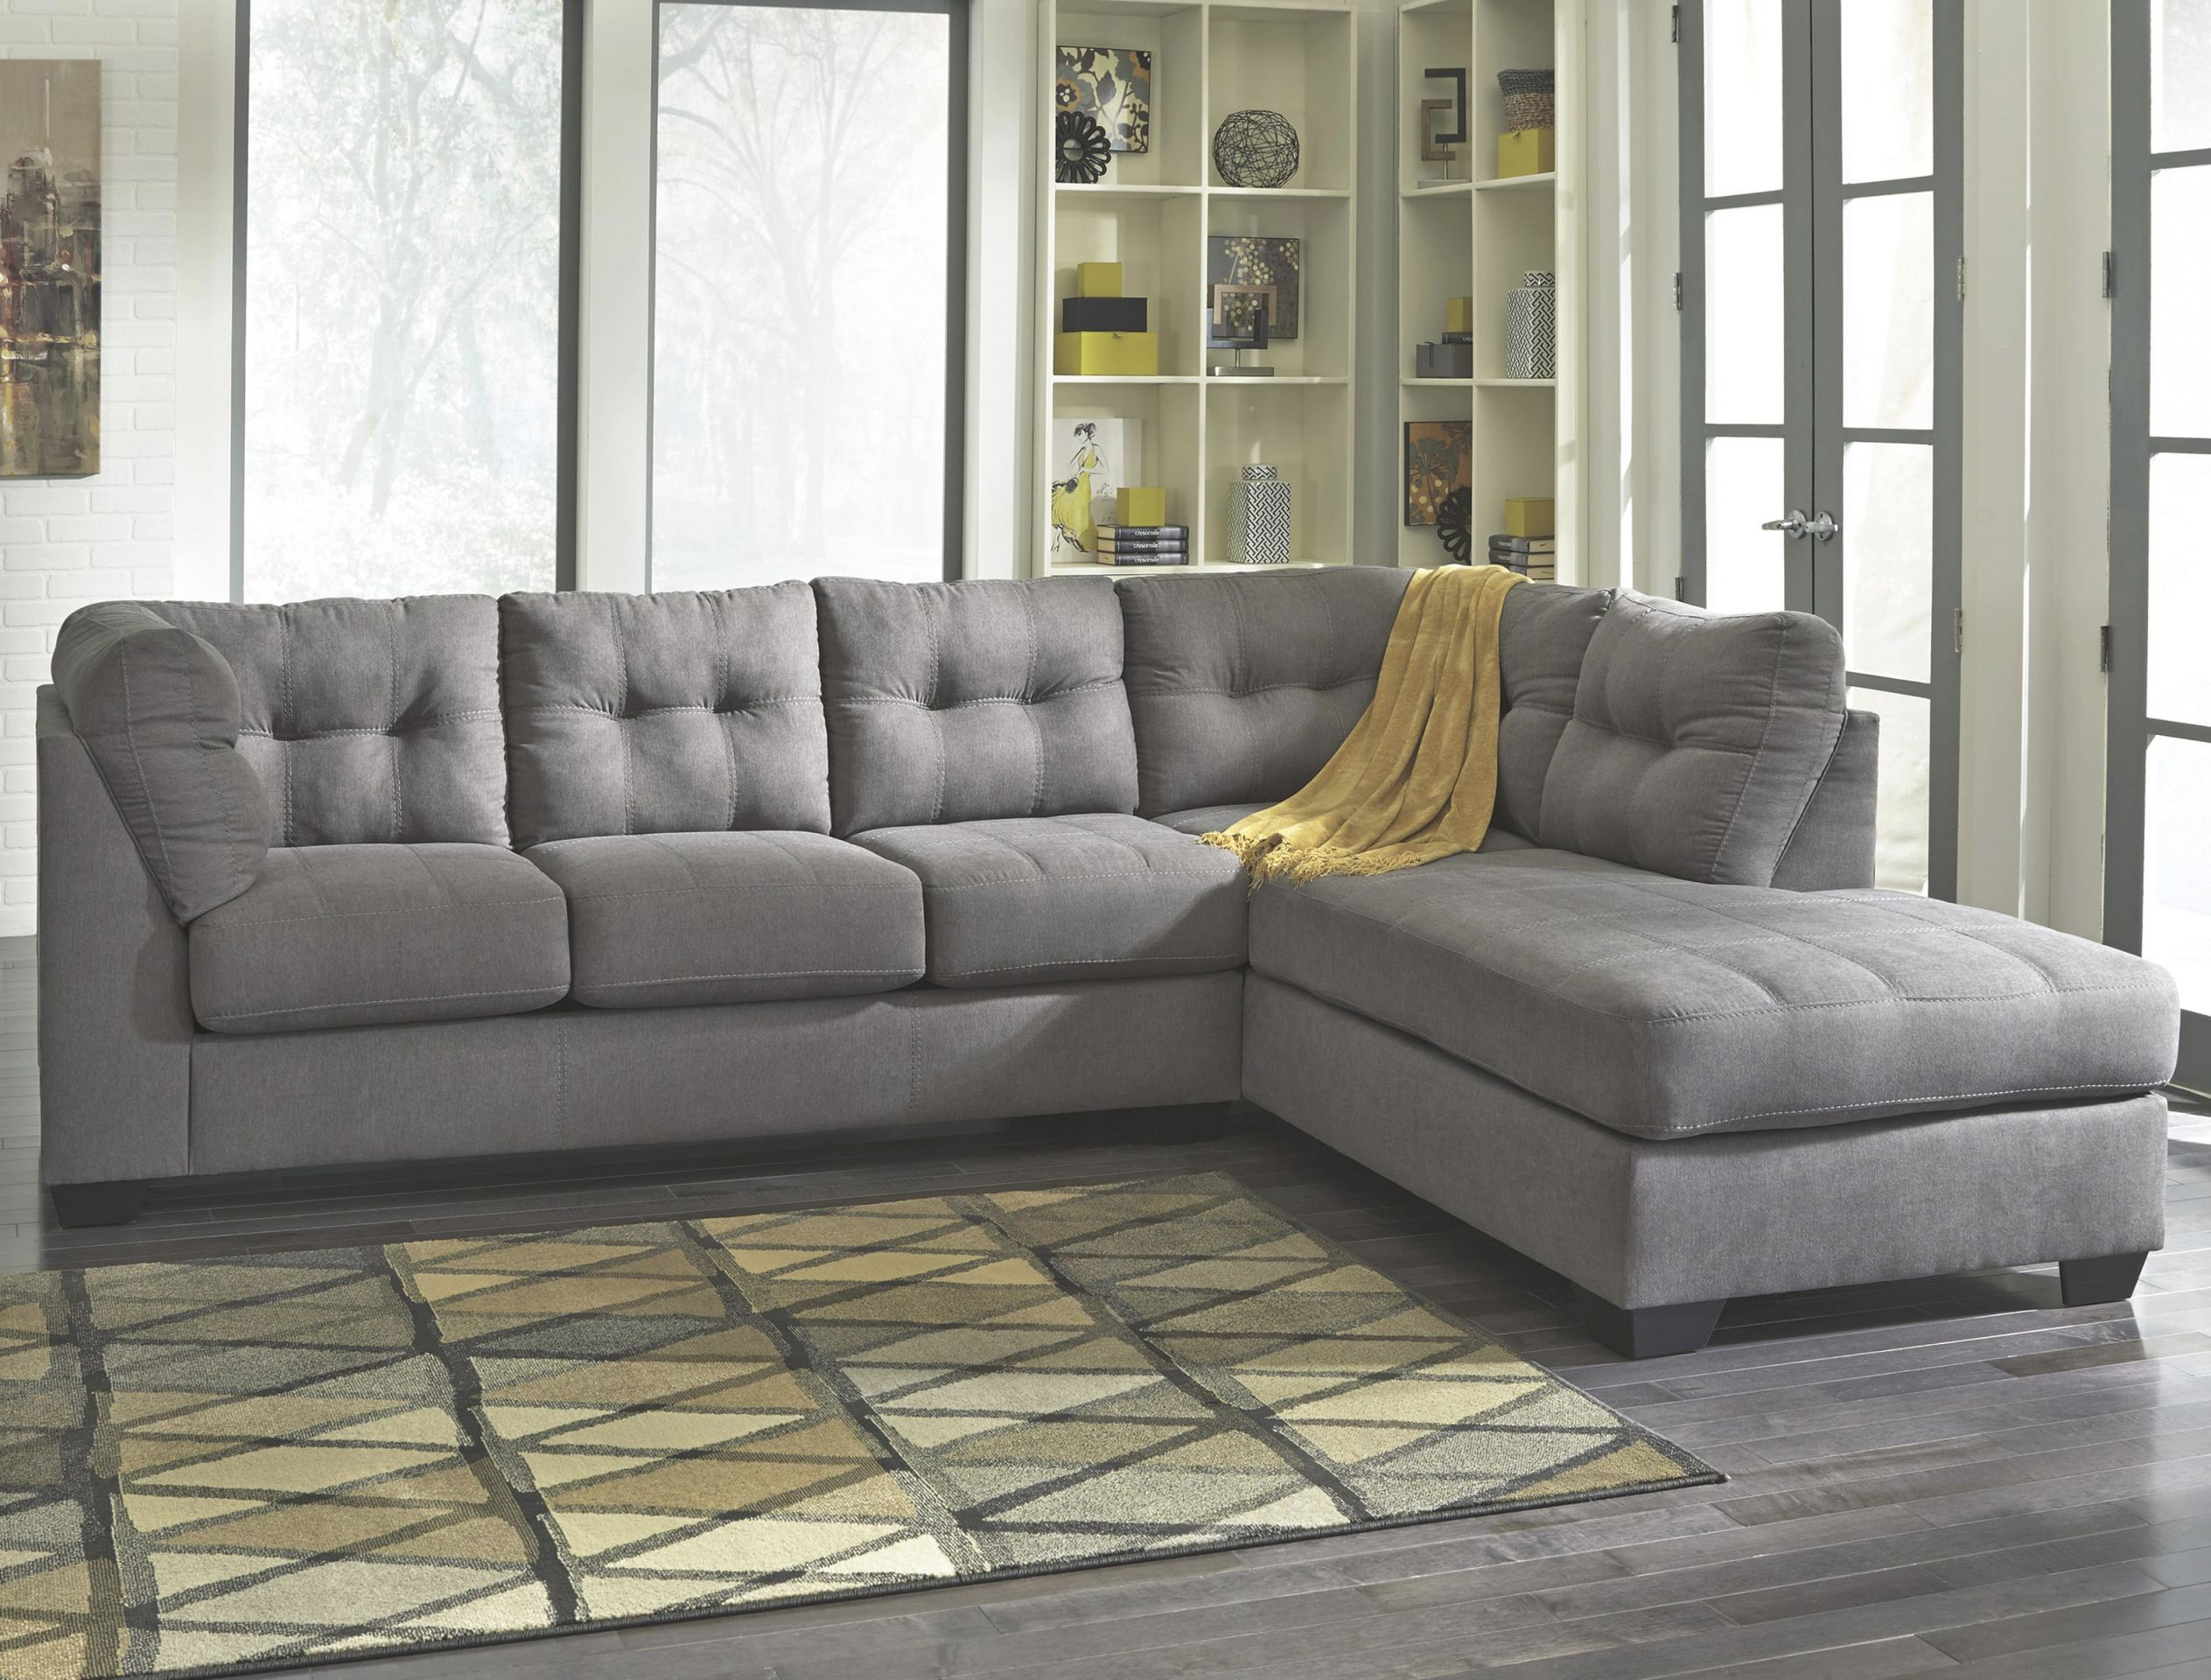 Maier – Charcoal 2-Piece Sectional W/ Sleeper Sofa & Right Chaise Benchcraft At John V Schultz Furniture throughout 2 Piece Sectional With Chaise